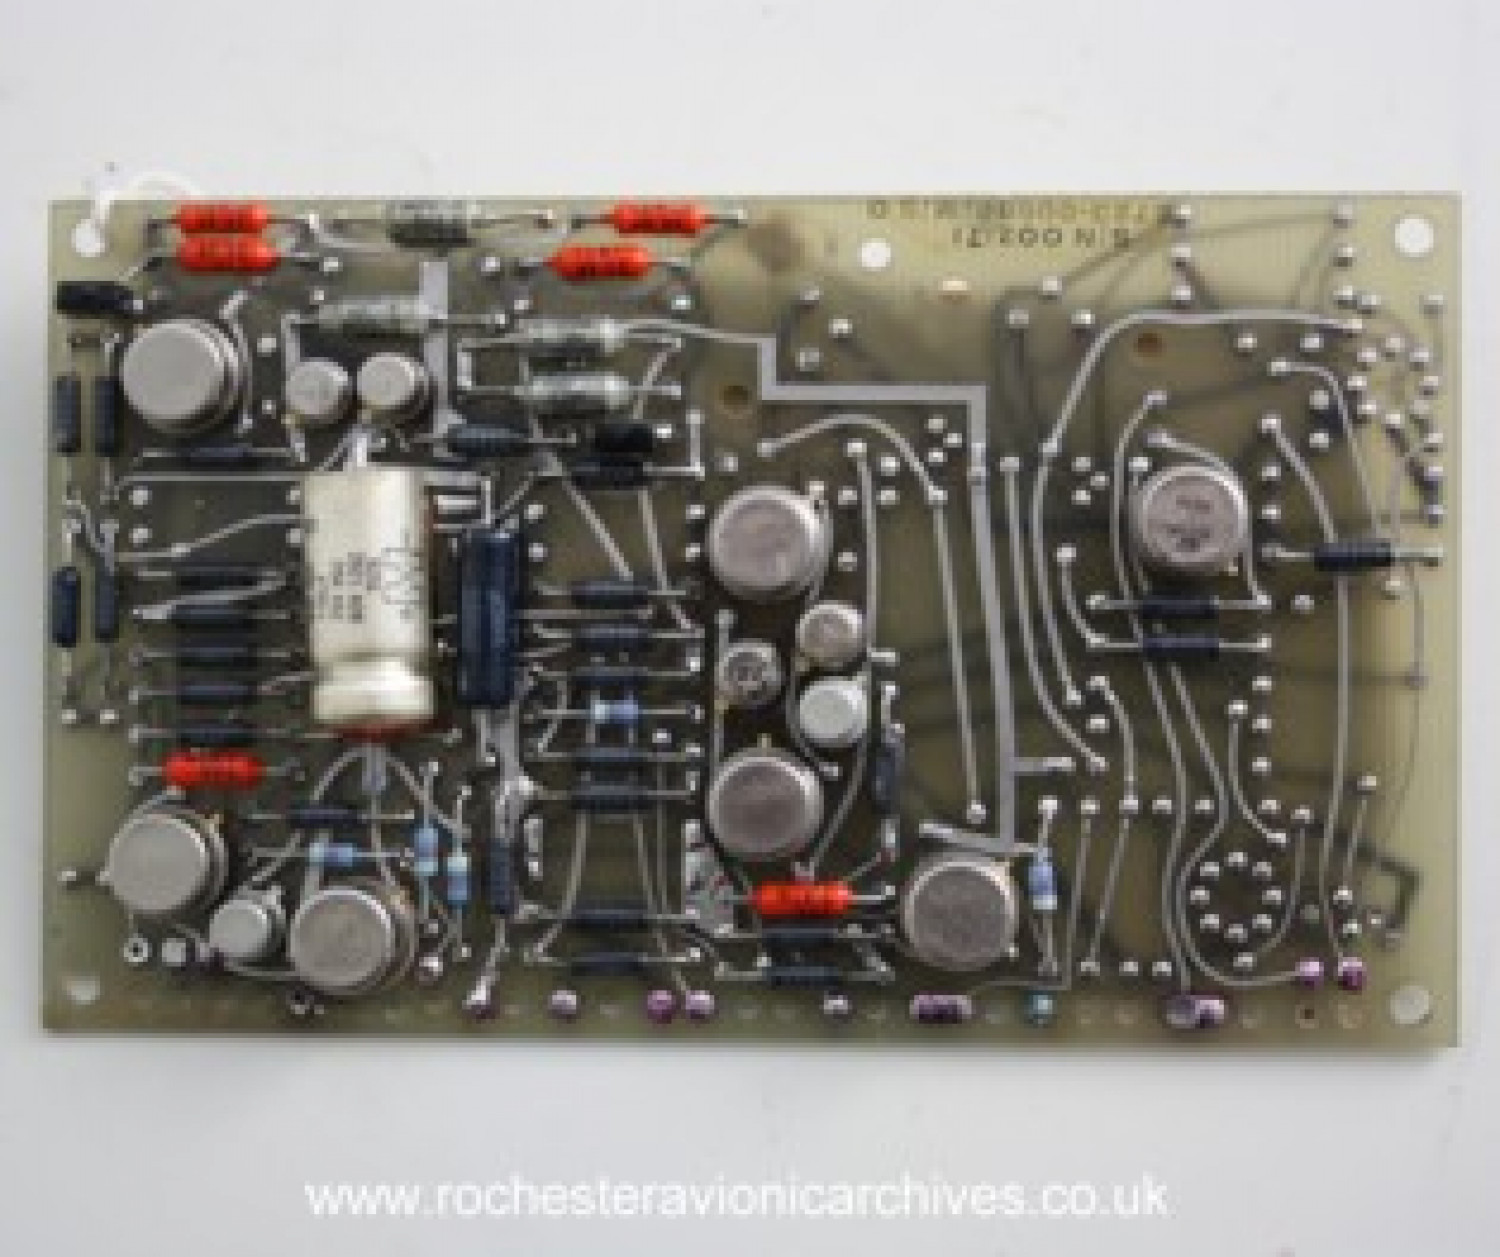 12V [Regulator] Circuit Board